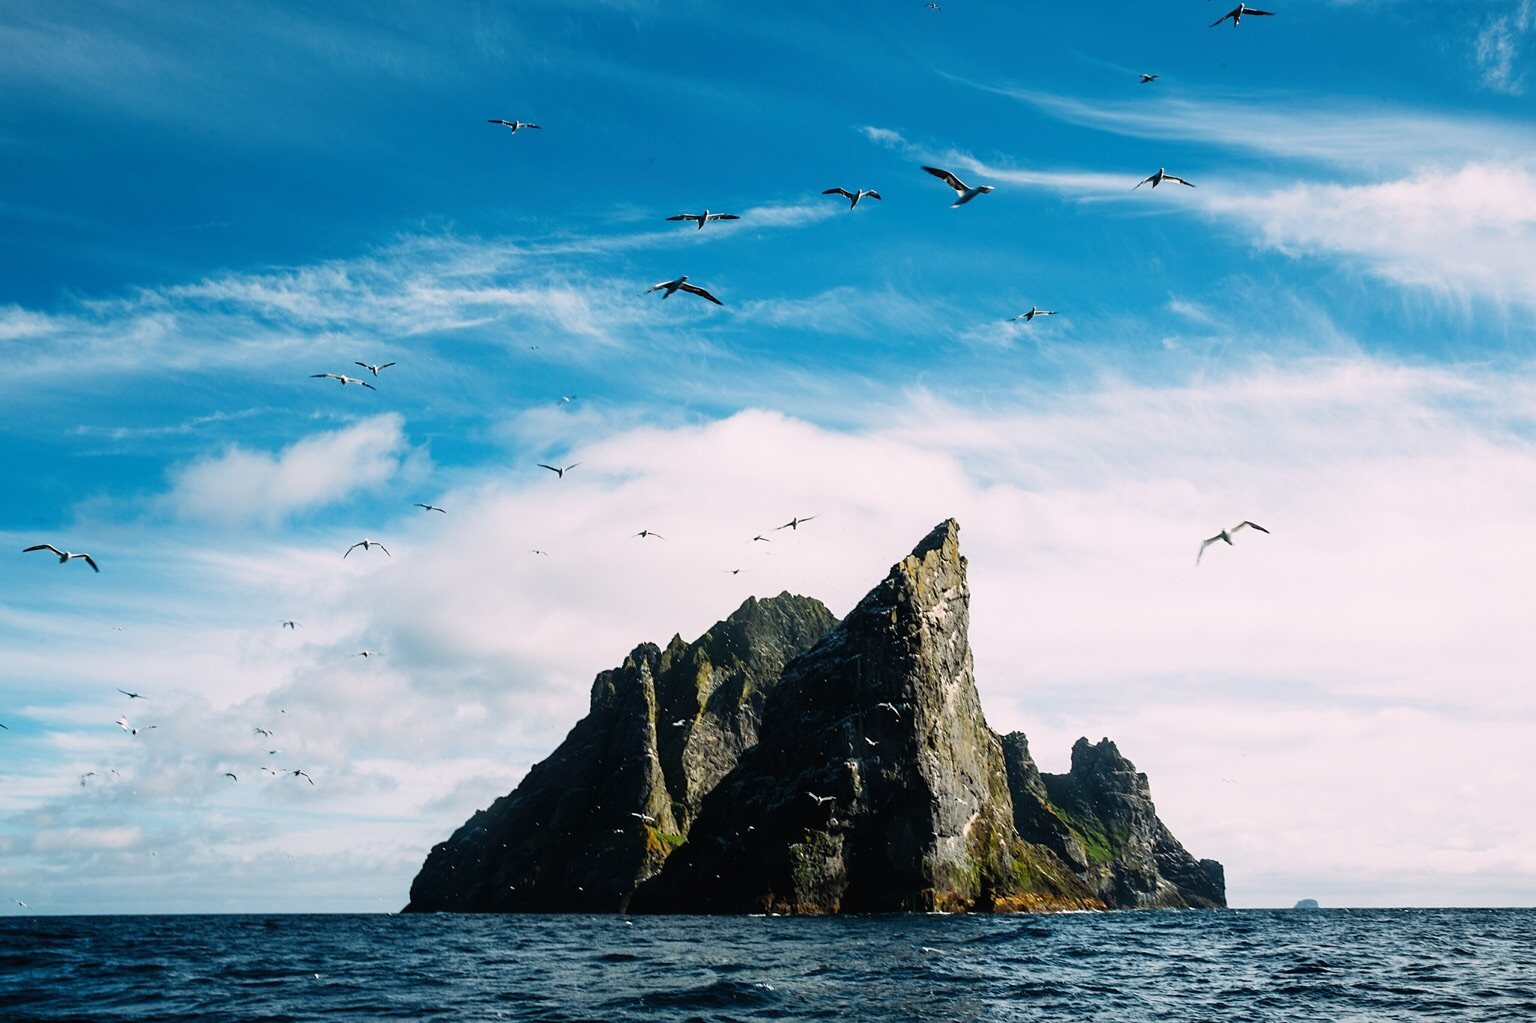 Stac An Armin in the foreground with Boreray behind. This is around 5 miles from Hirta, a distance covered by native St Kildans in rowing boat, across the open Atlantic. I thought our boat was rough! This isn't a spot the tour boat usually visits, but having seen this perspective before, I asked Derek if he could get us there for this shot. This is home to the largest Norther Gannet population in the world (1/7th of the total population, all hanging out hoping that we were a fishing boat)